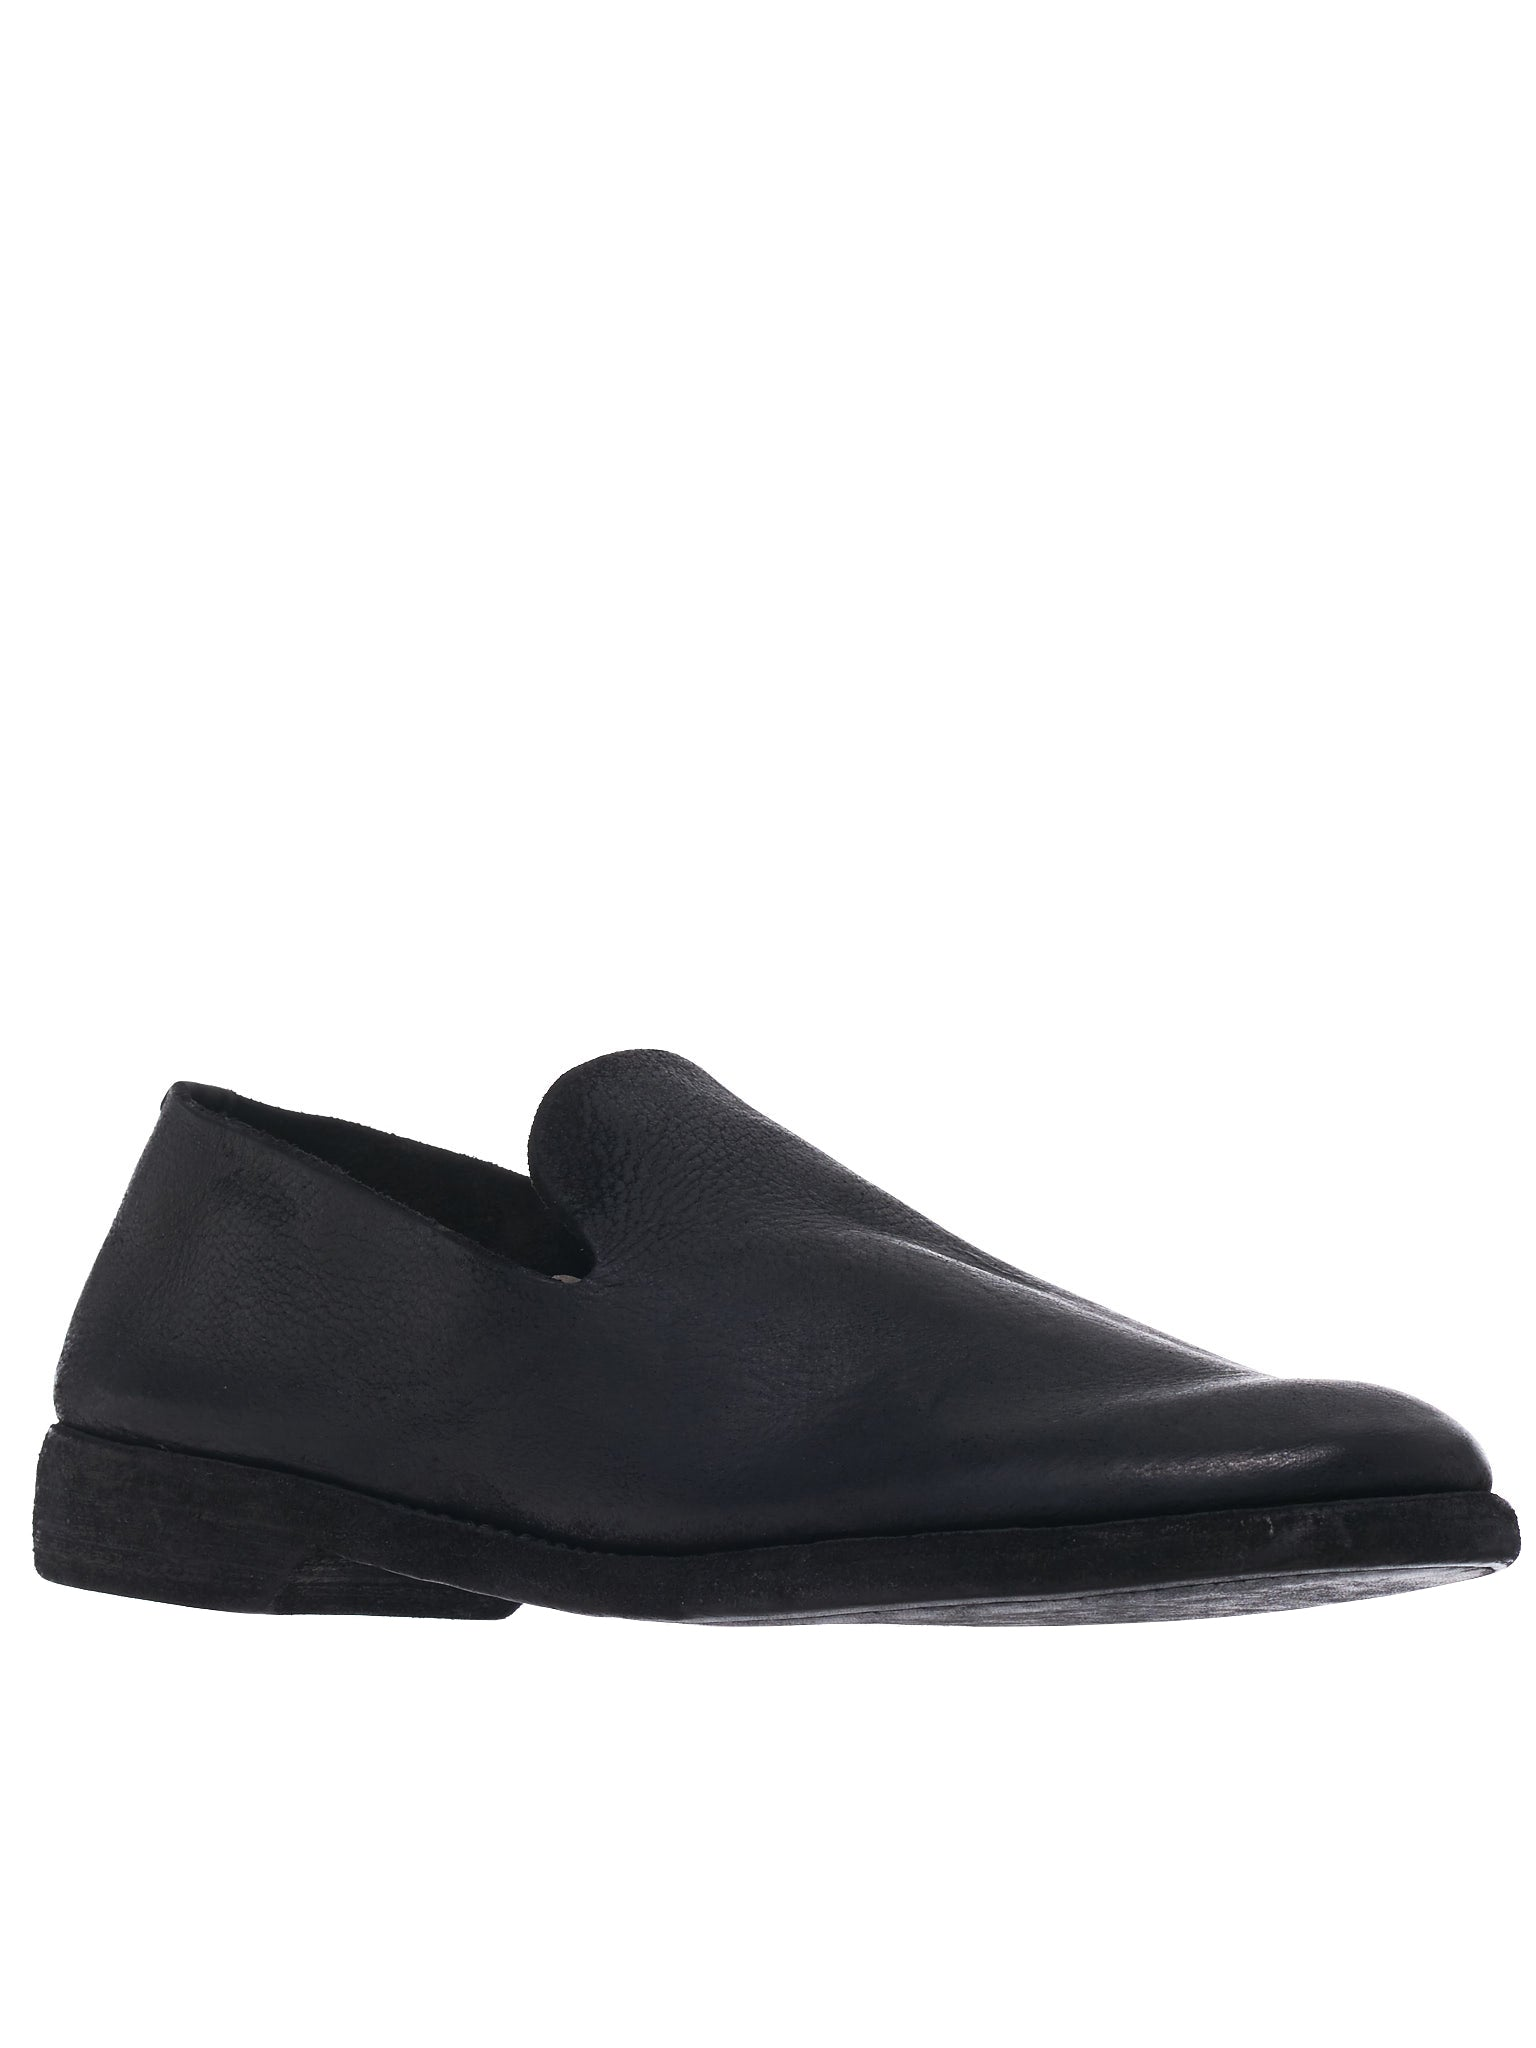 Guidi Slip-On Shoes - Hlorenzo Side